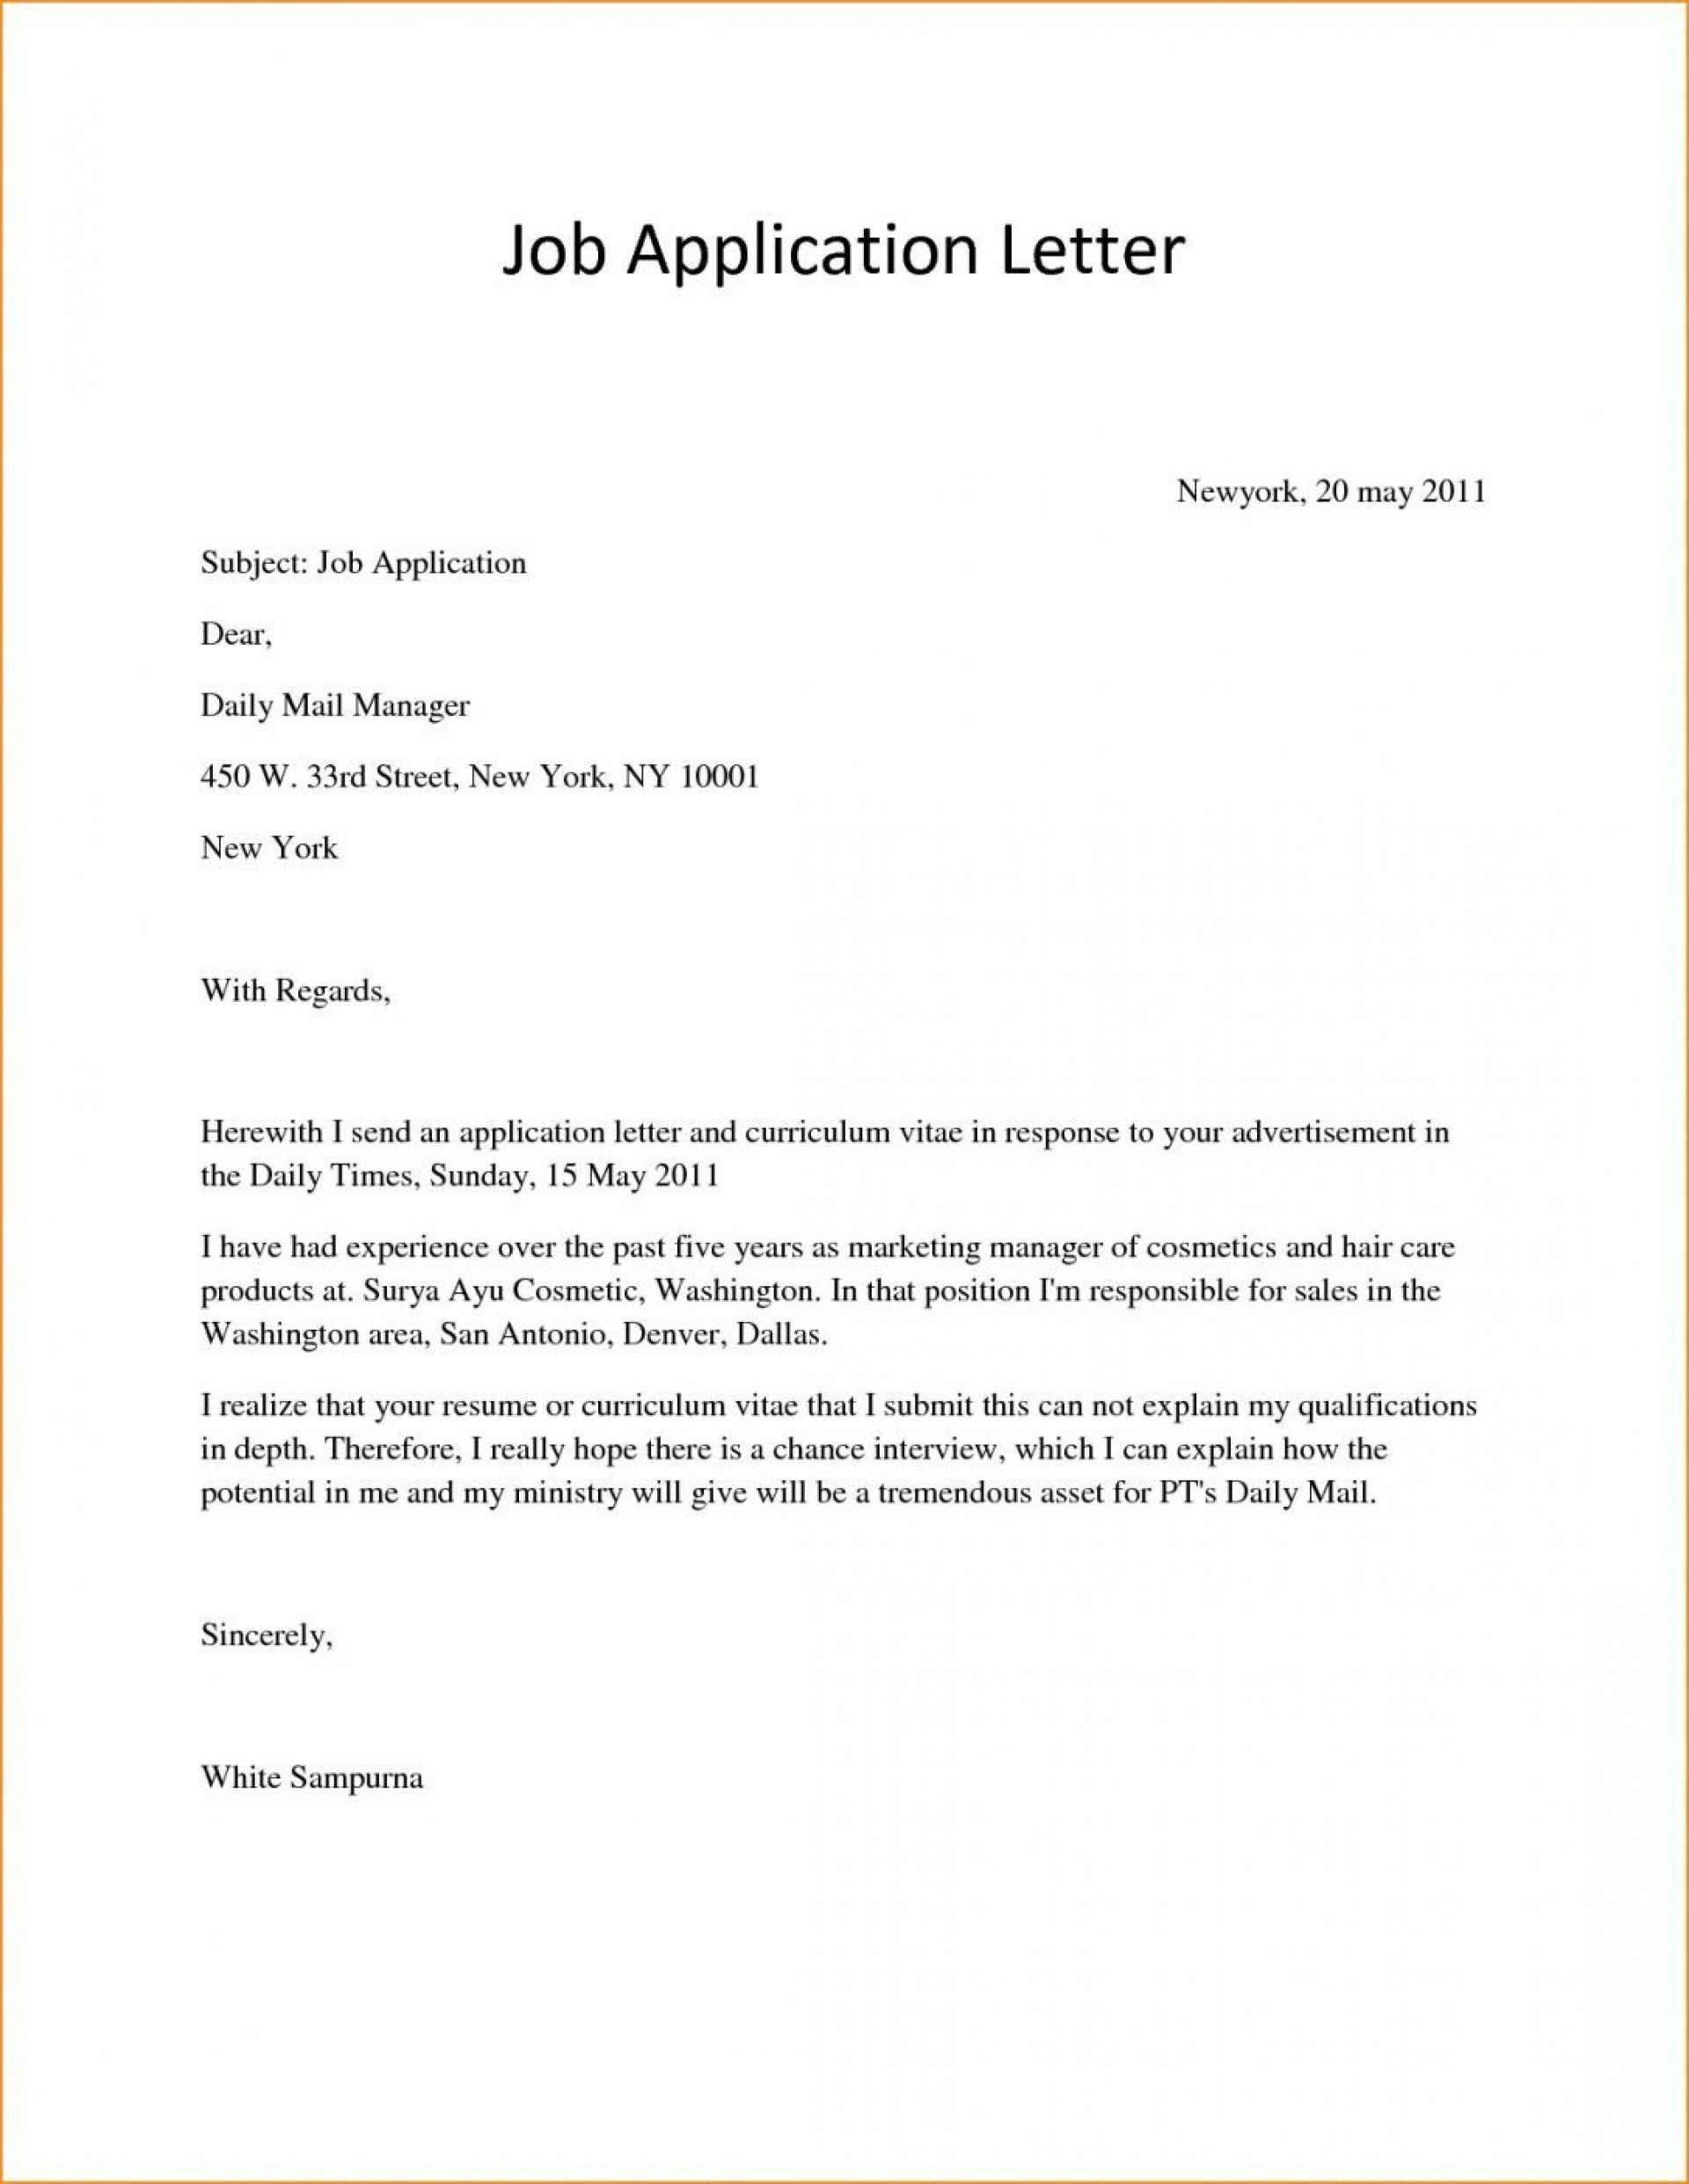 006 Awful Basic Covering Letter Template Photo  Simple Application Job Sample Cover1920